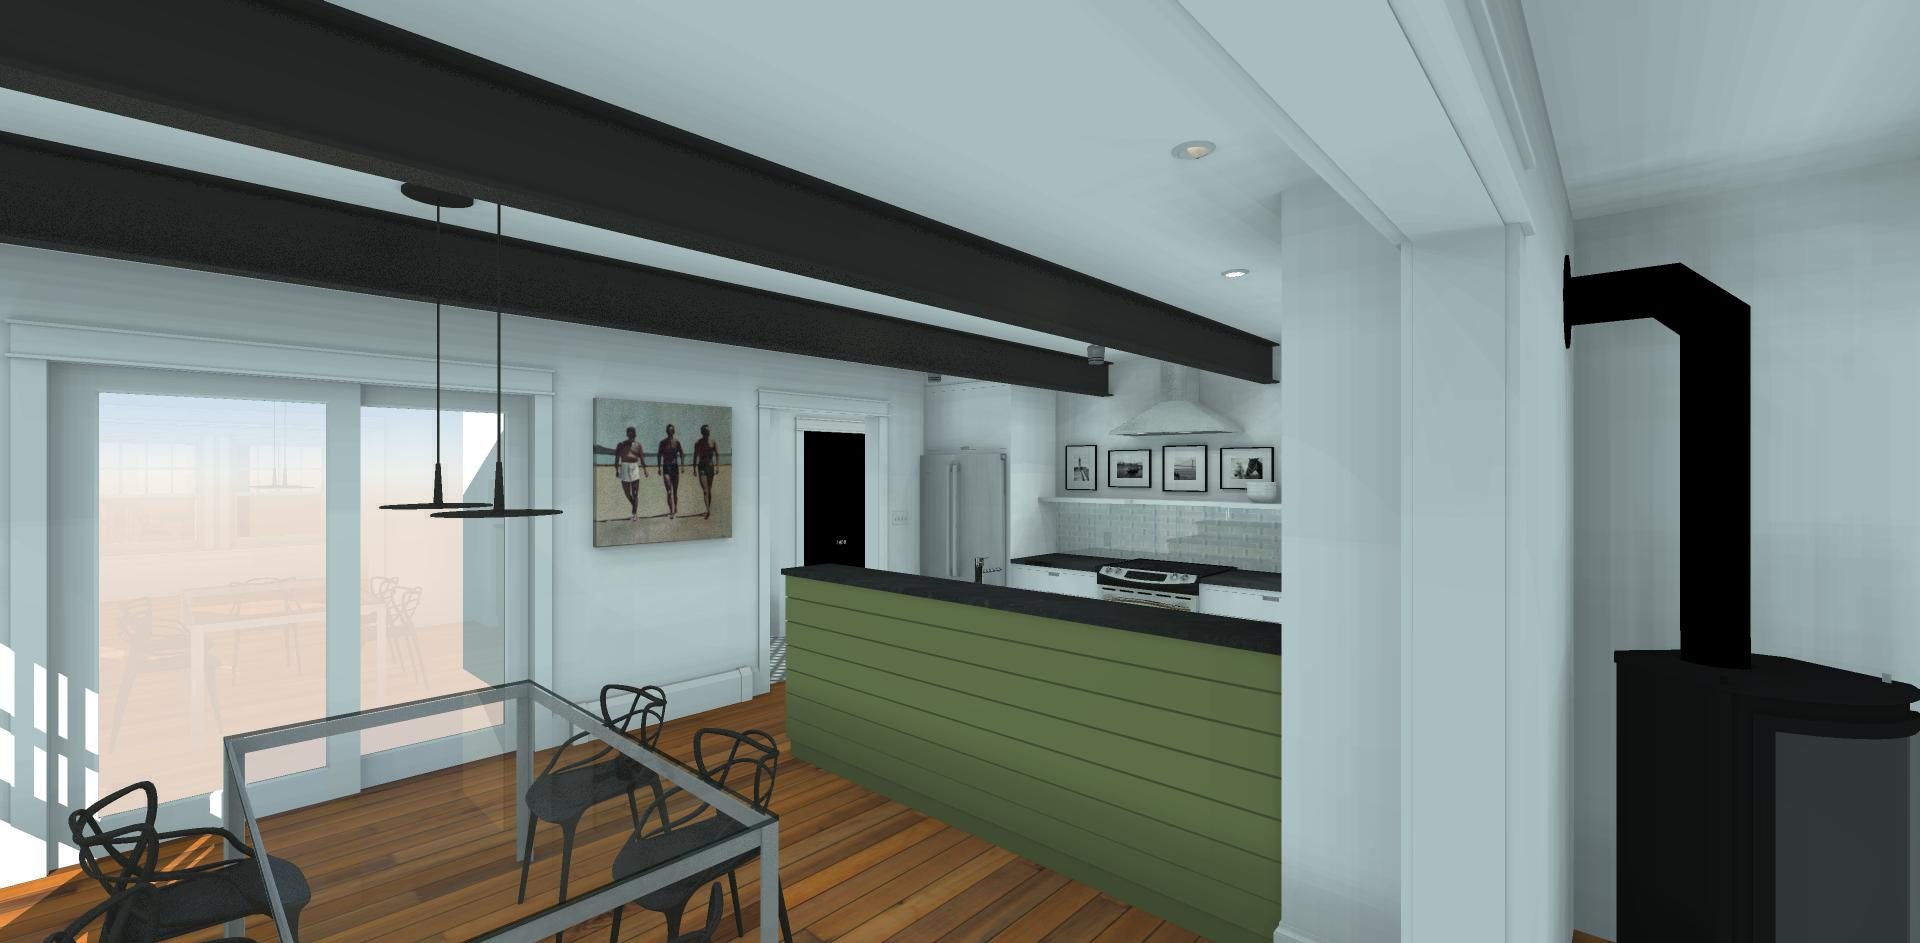 10.24.16.Blount.Kitchen From Living Room.3D Render